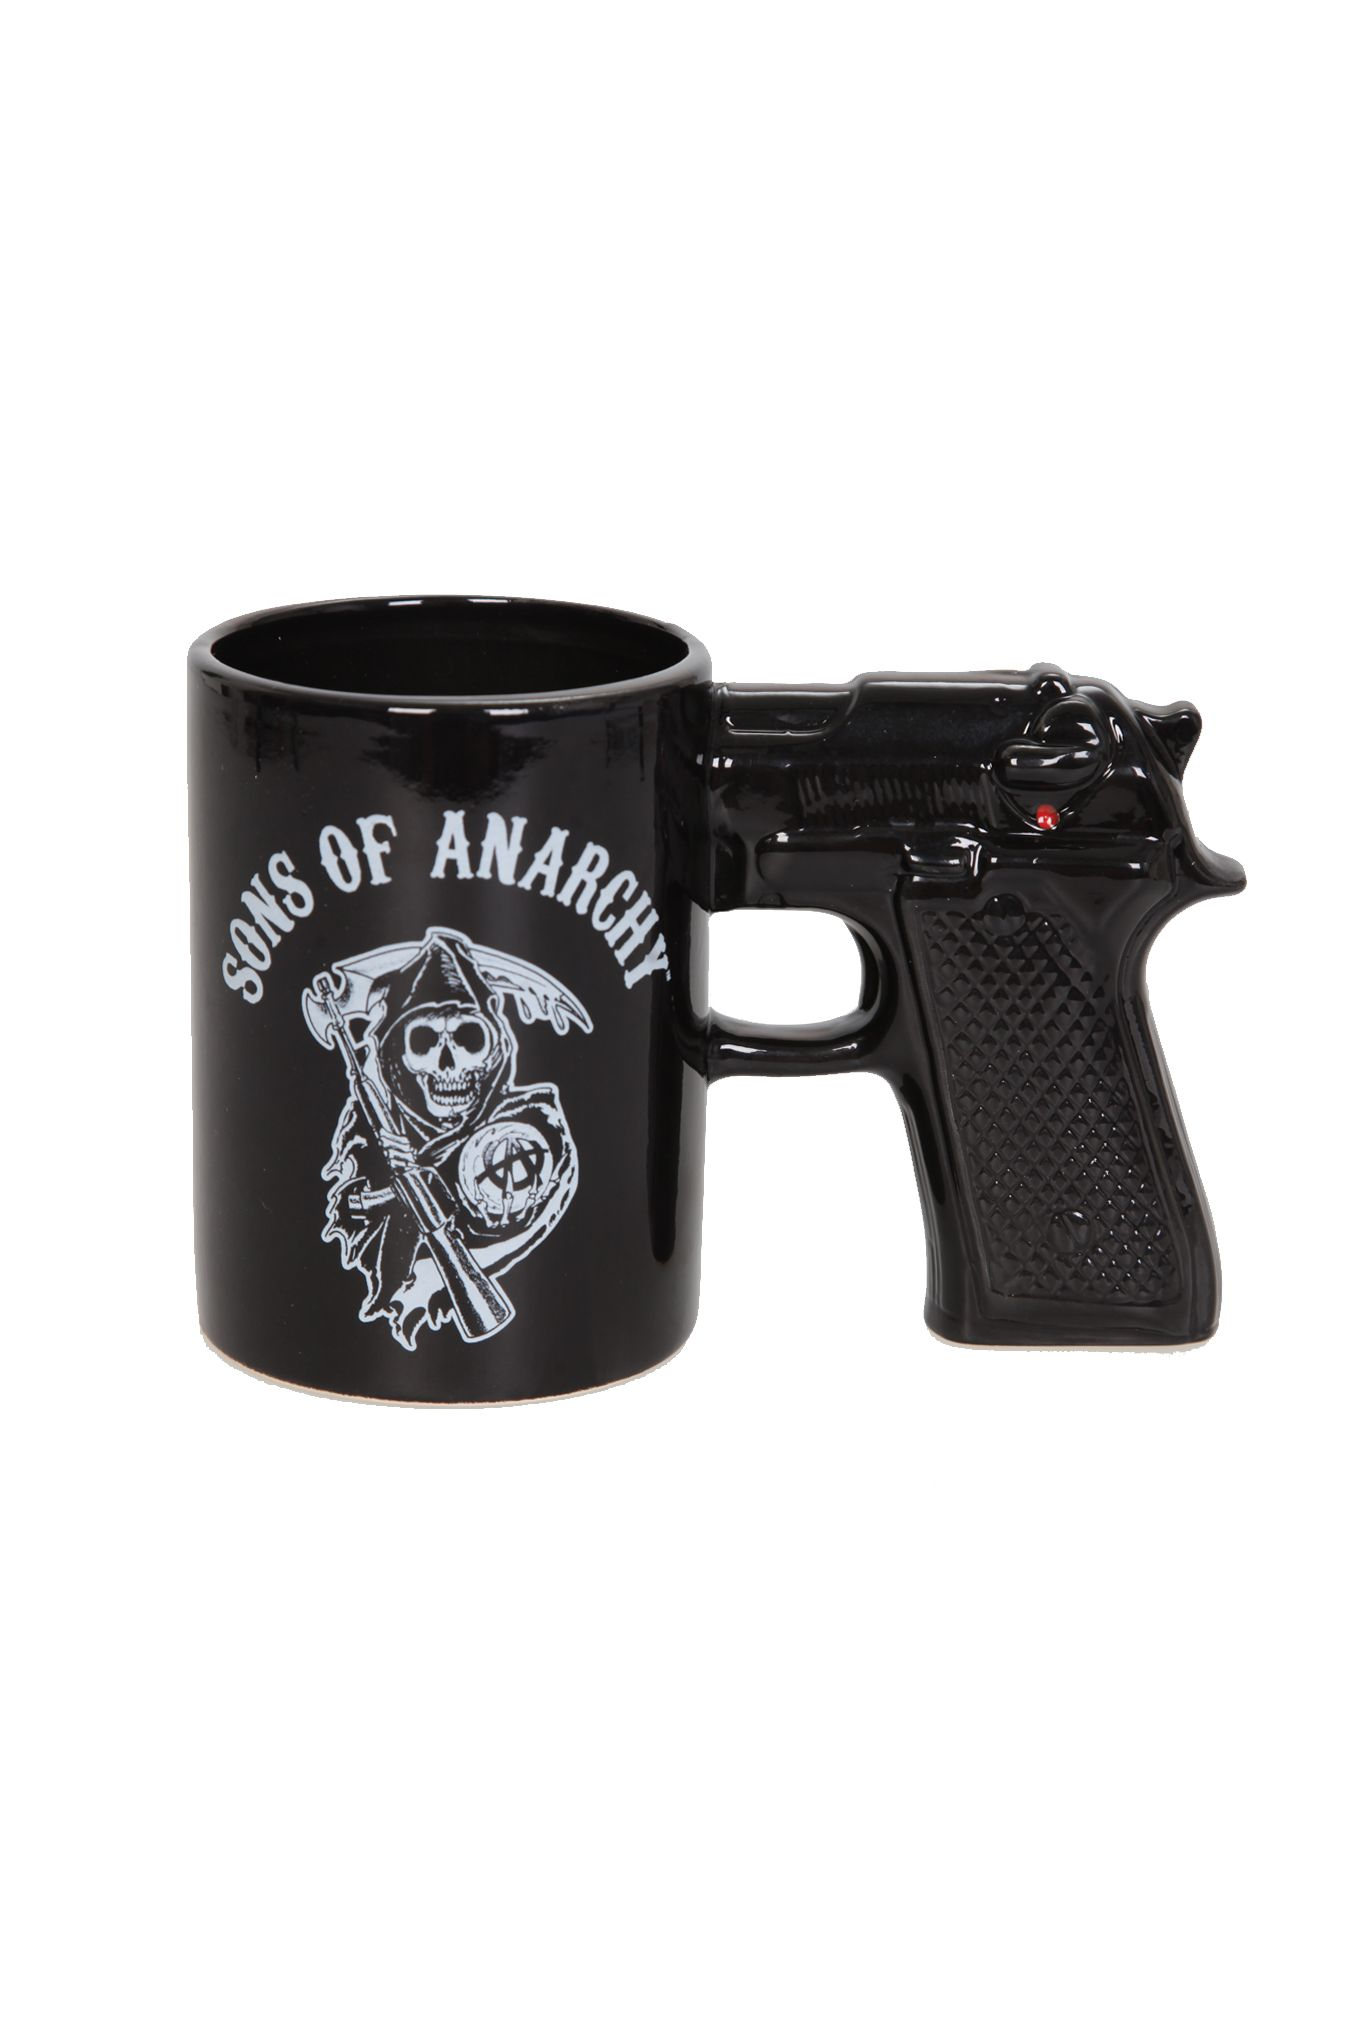 This 15 oz ceramic mug with gun shaped handle features Sons